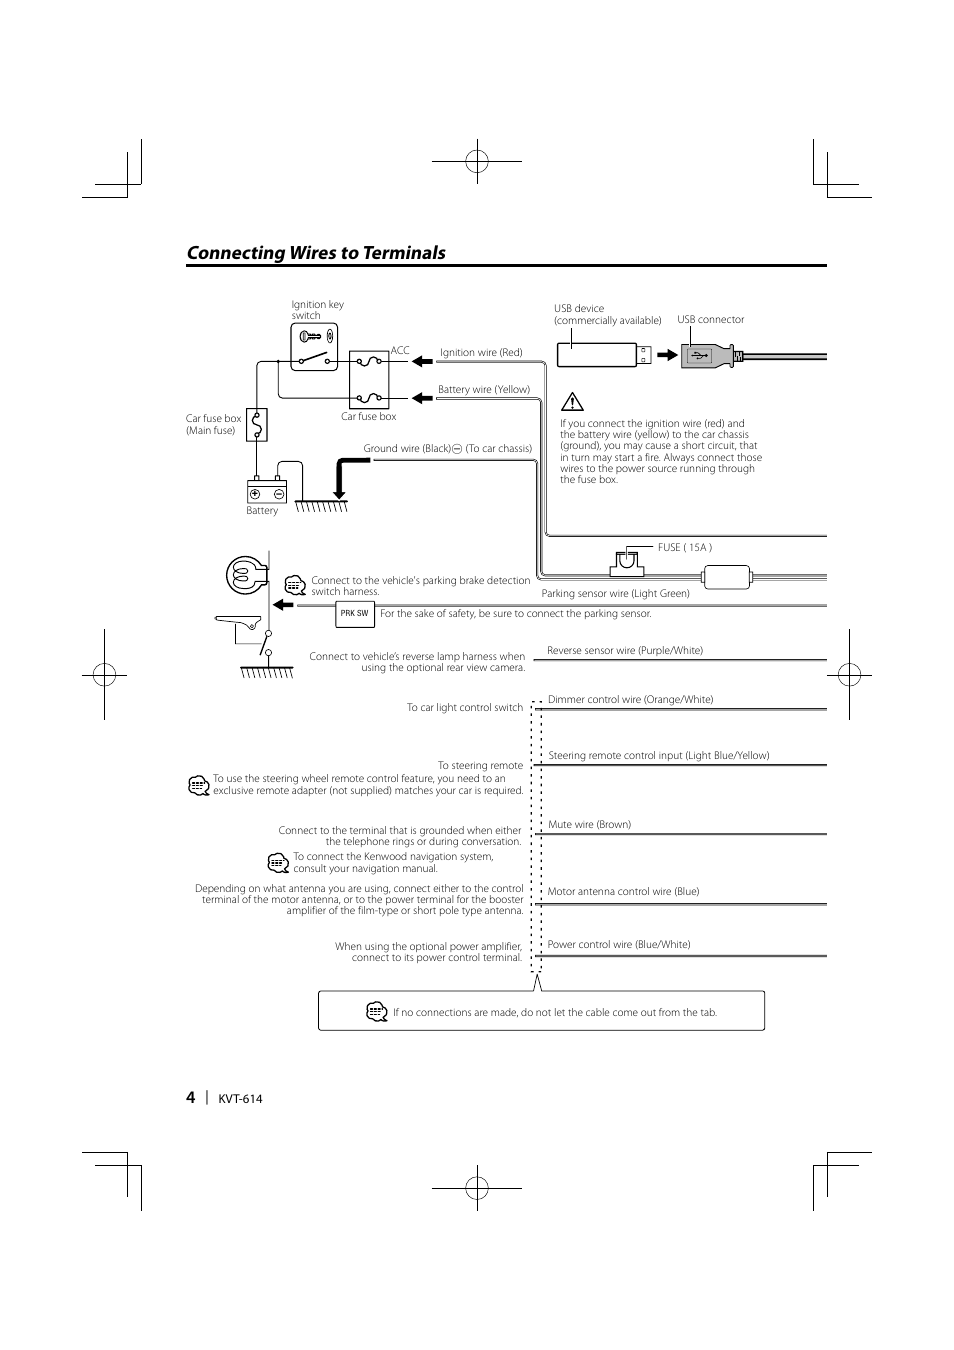 kenwood kvt 614 page4 connecting wires to terminals kenwood kvt 614 user manual page 4